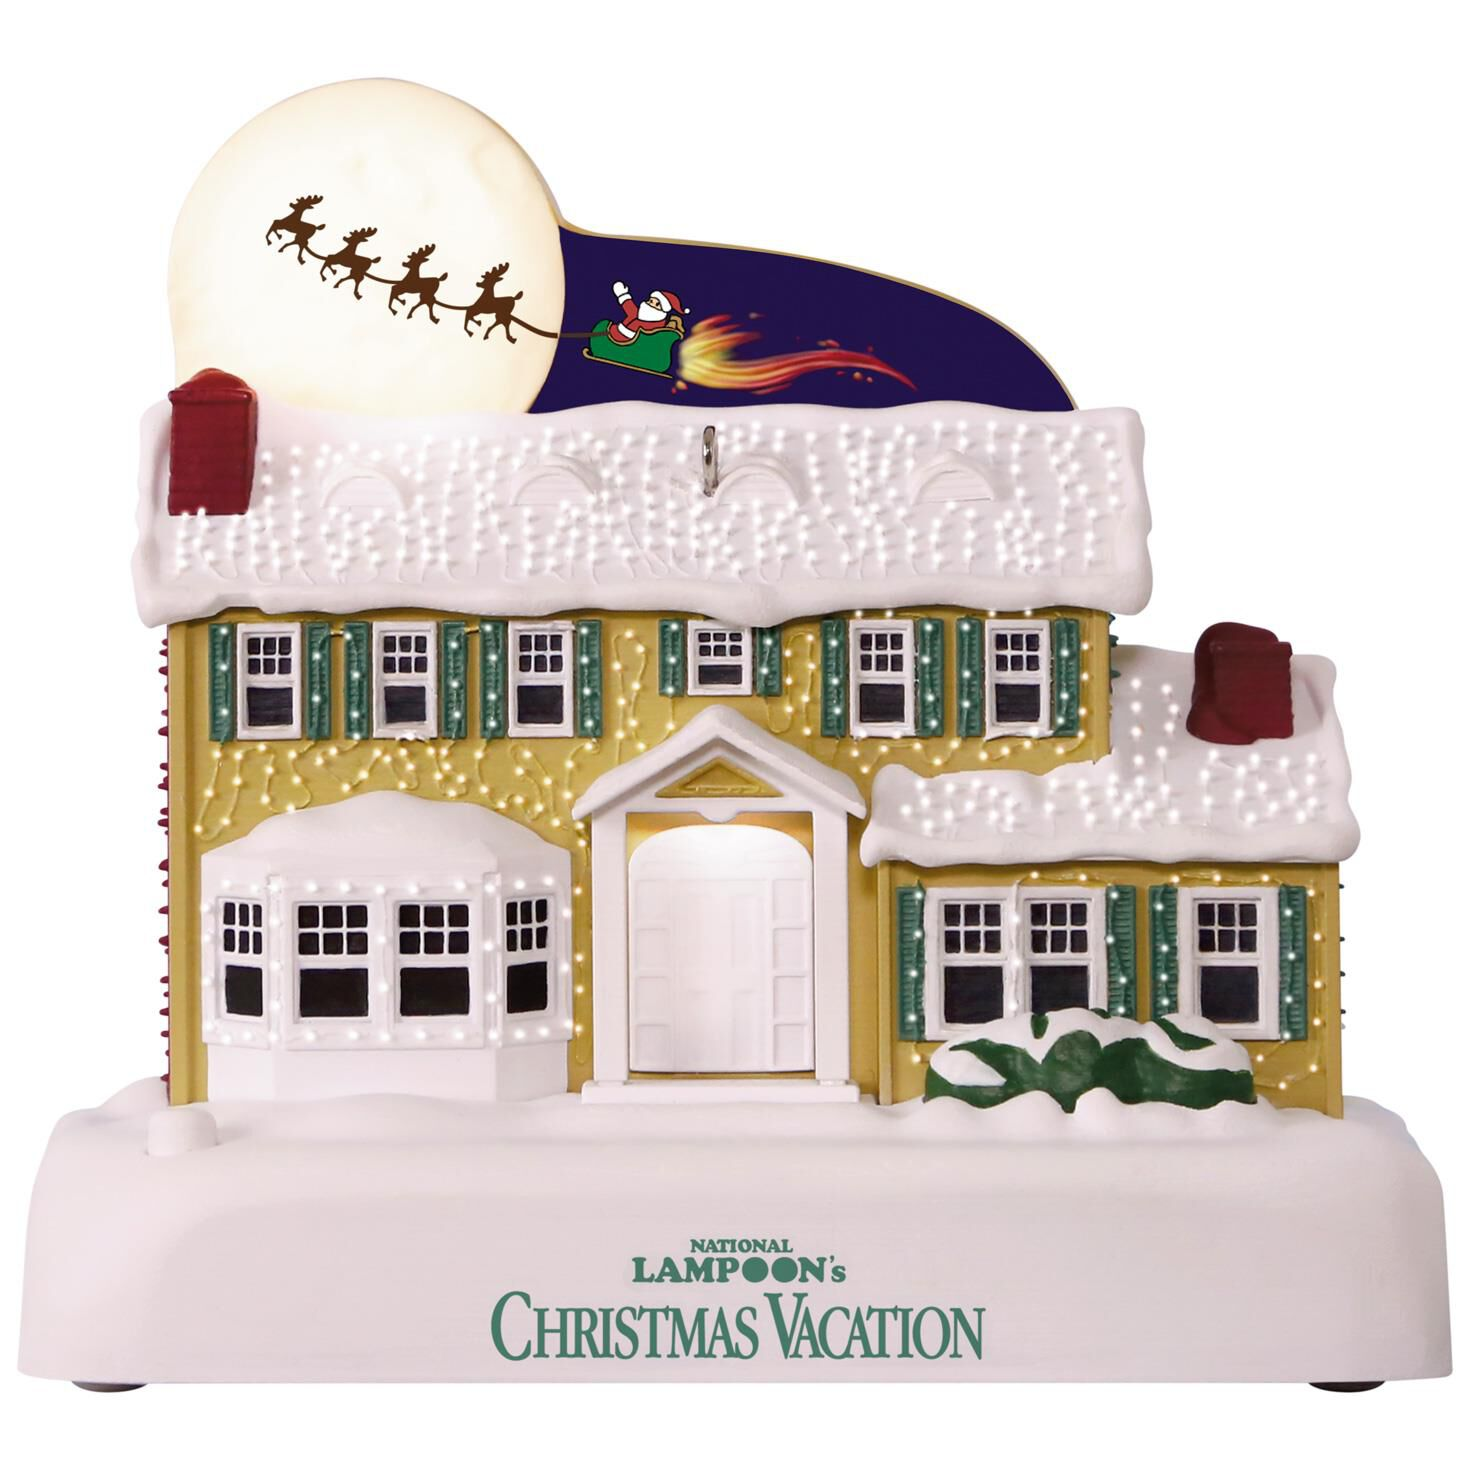 White house christmas ornament free shipping - White House Christmas Ornament Free Shipping